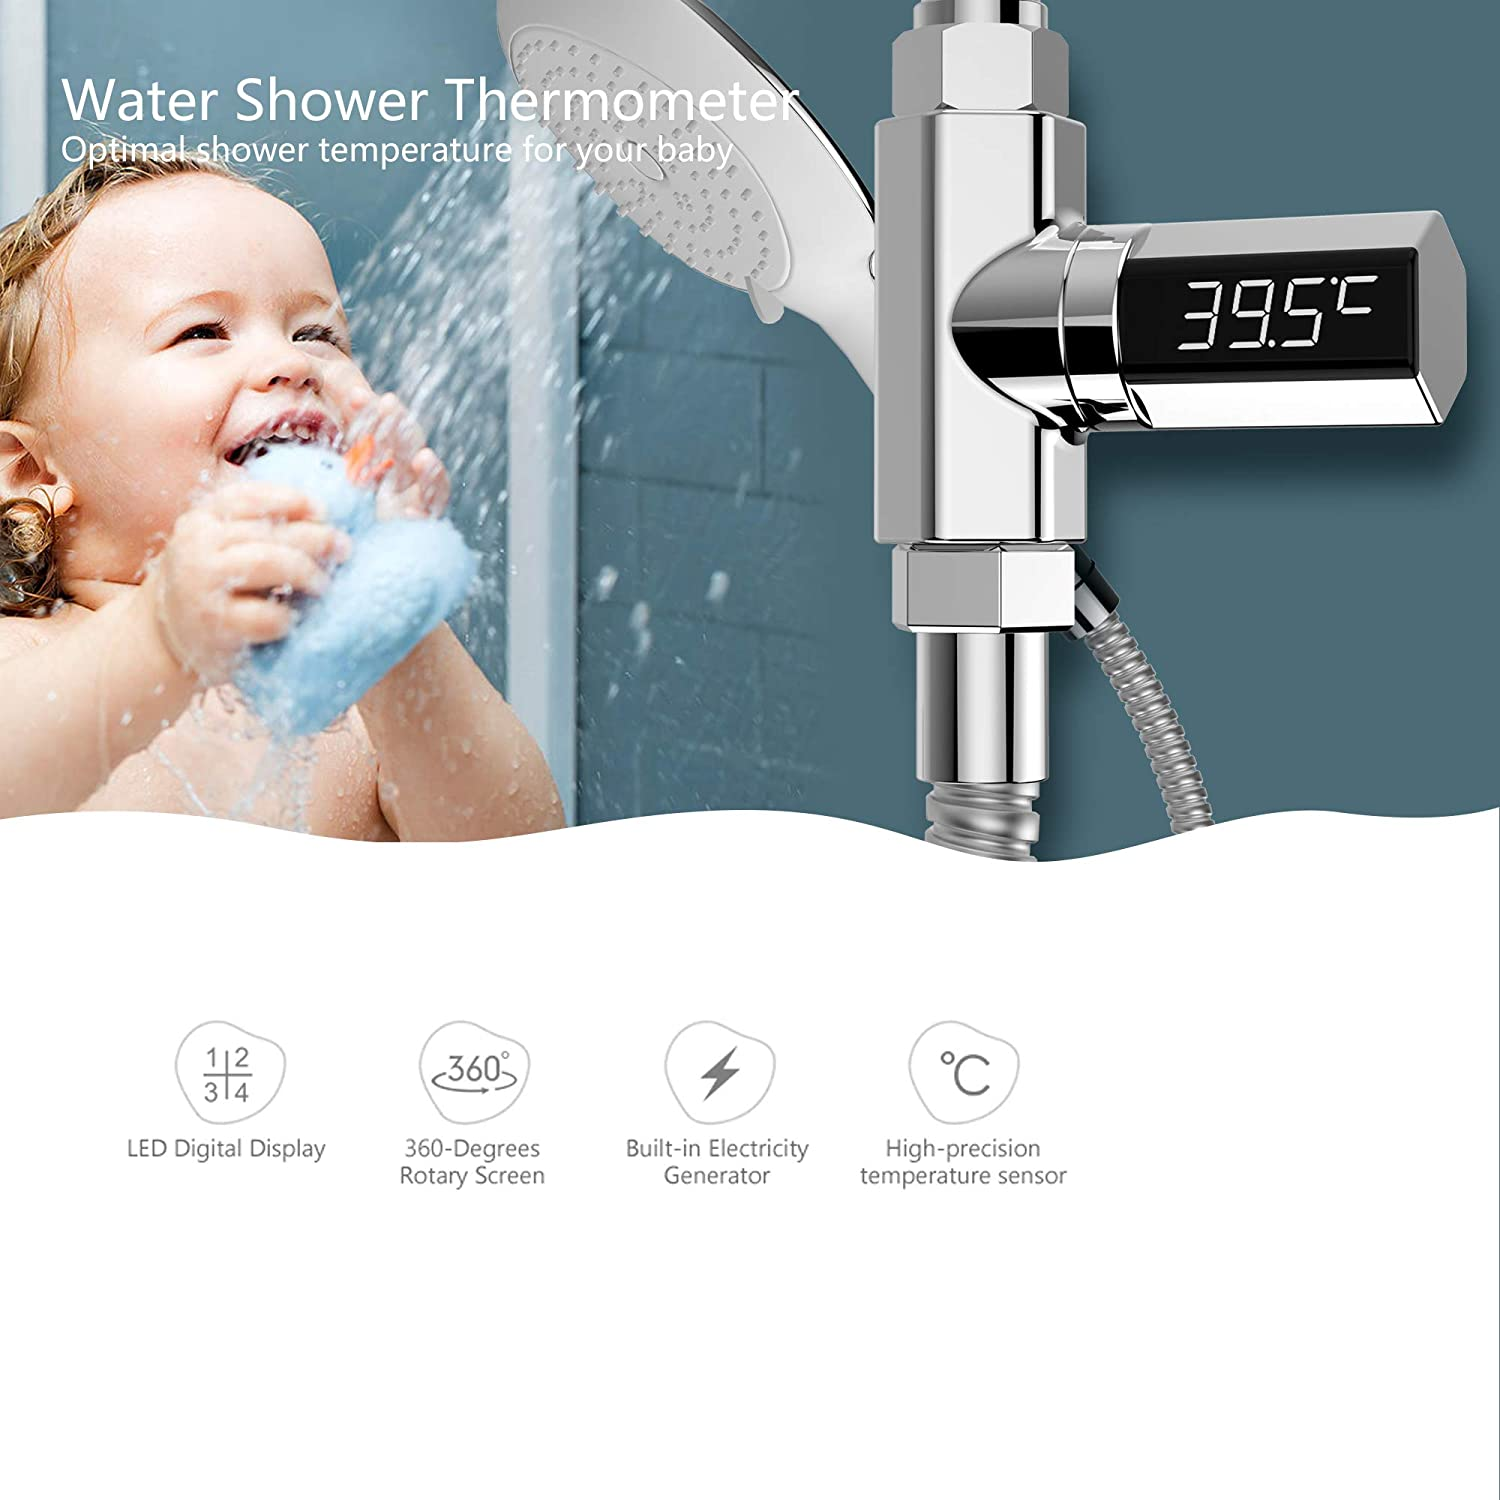 Surobayuusaku LED Display Water Shower Thermometer Self-Generating Electricity Water Temperature Monitor Energy Smart Meter